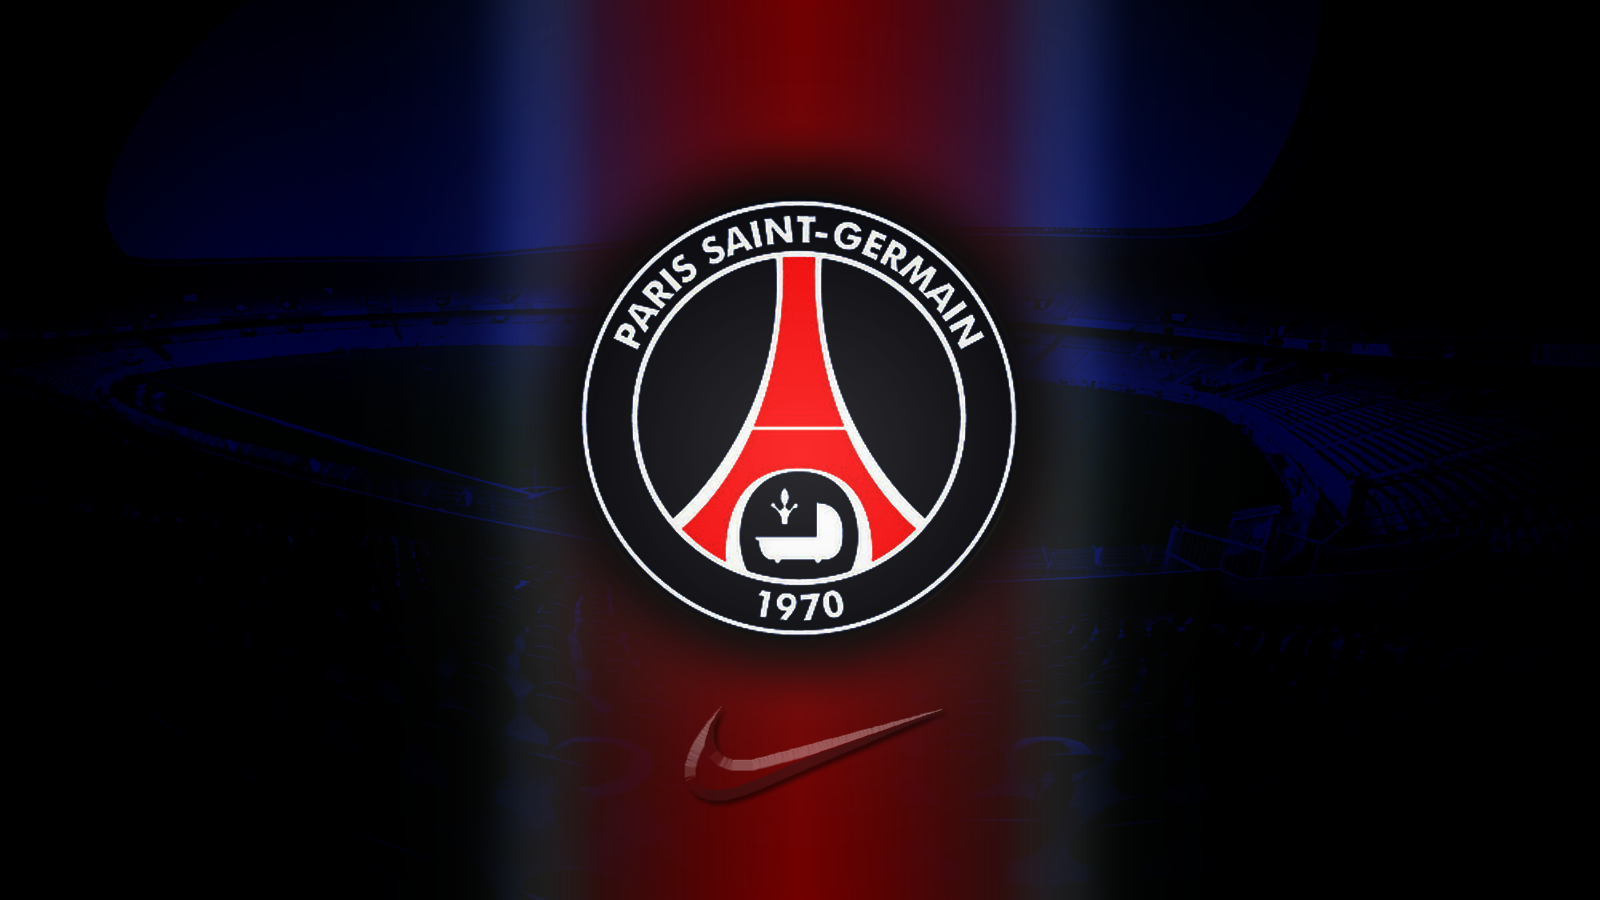 1600x900 - Paris Saint-Germain F.C. Wallpapers 8